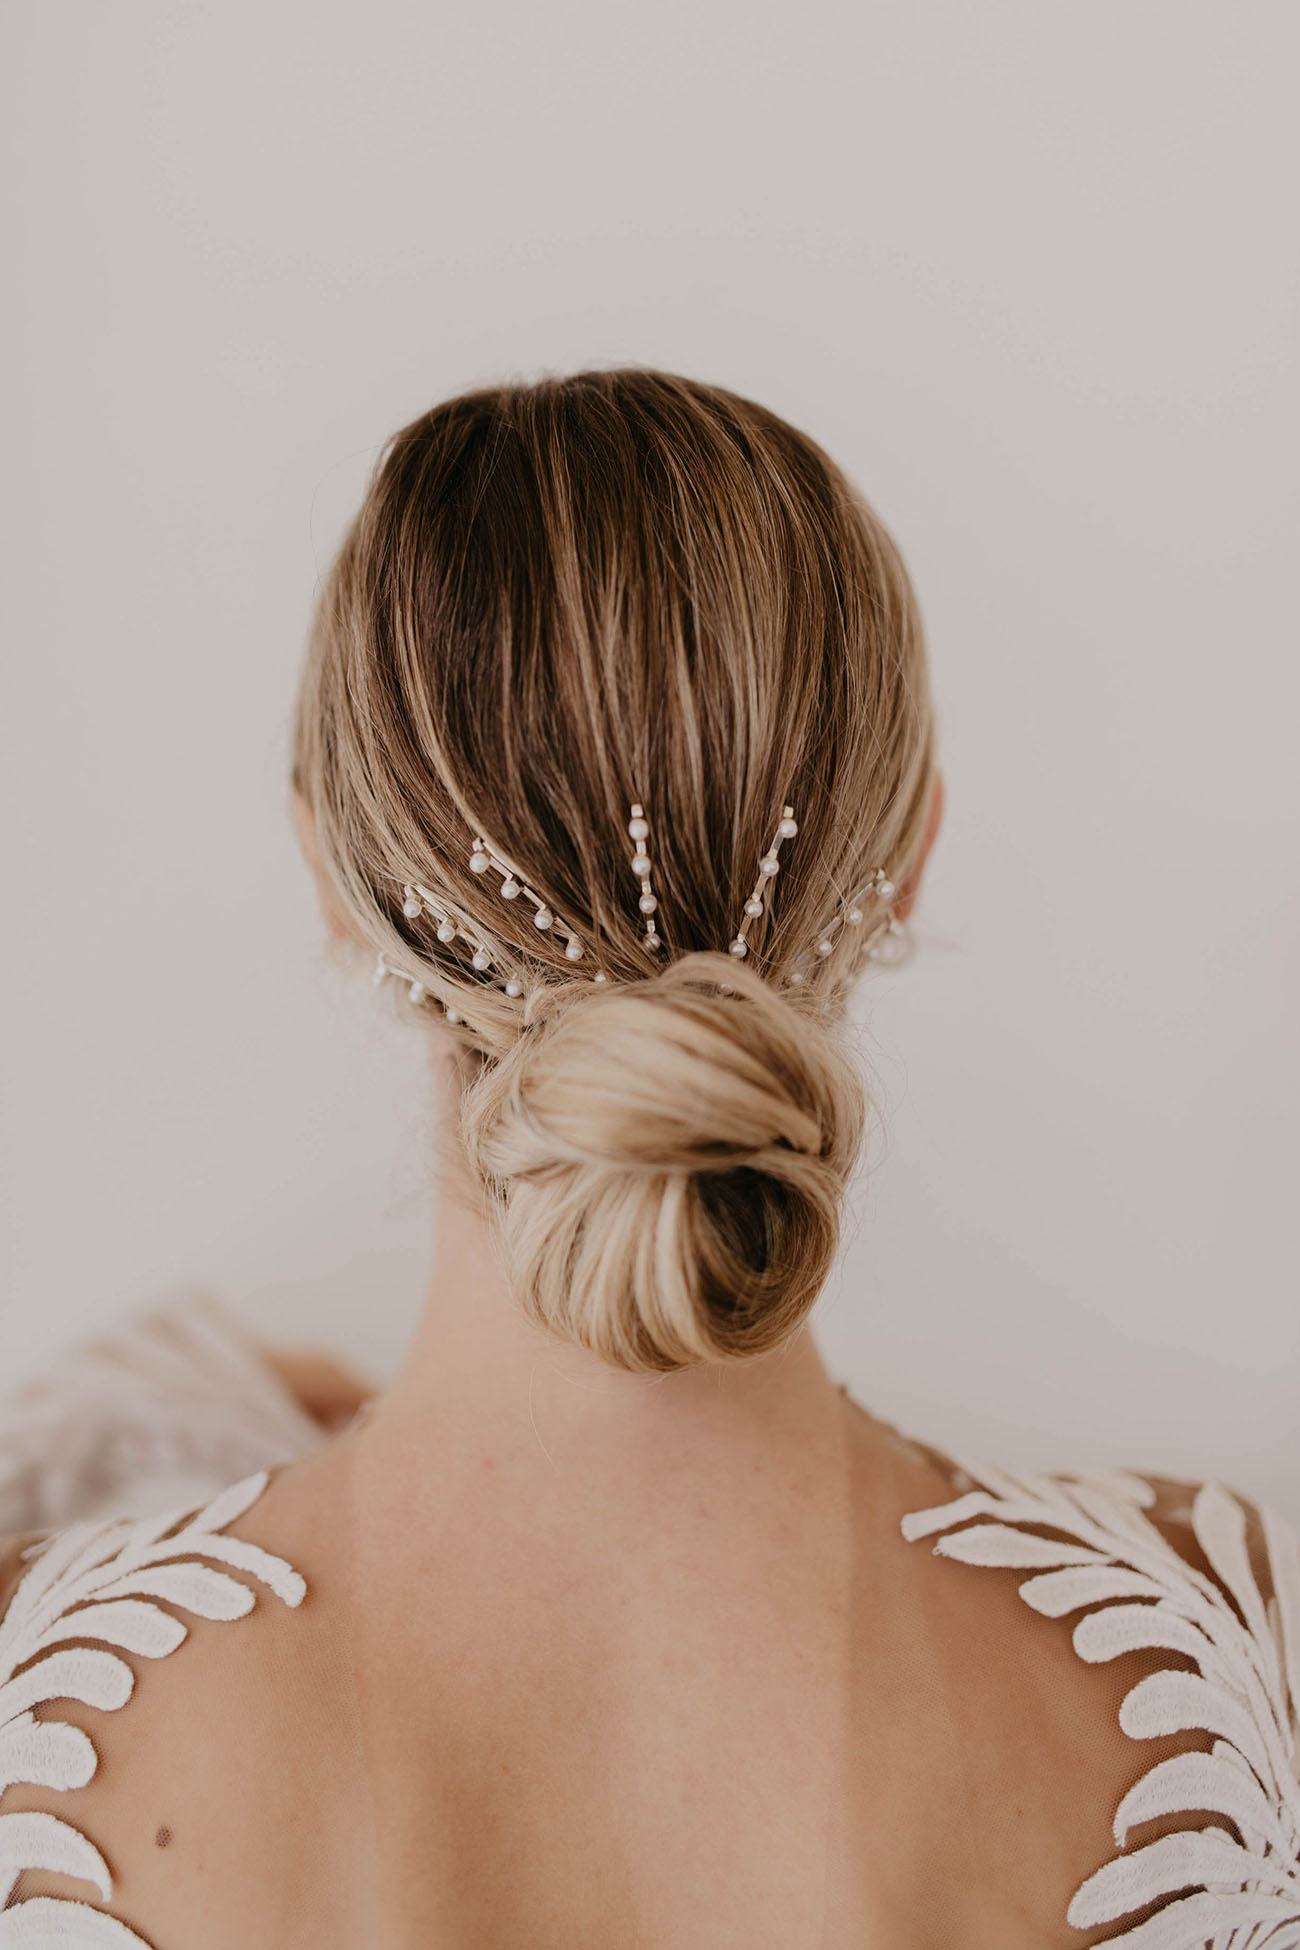 a low bun accented with a large hair barrette with pearls looks modern, feminine and very chic